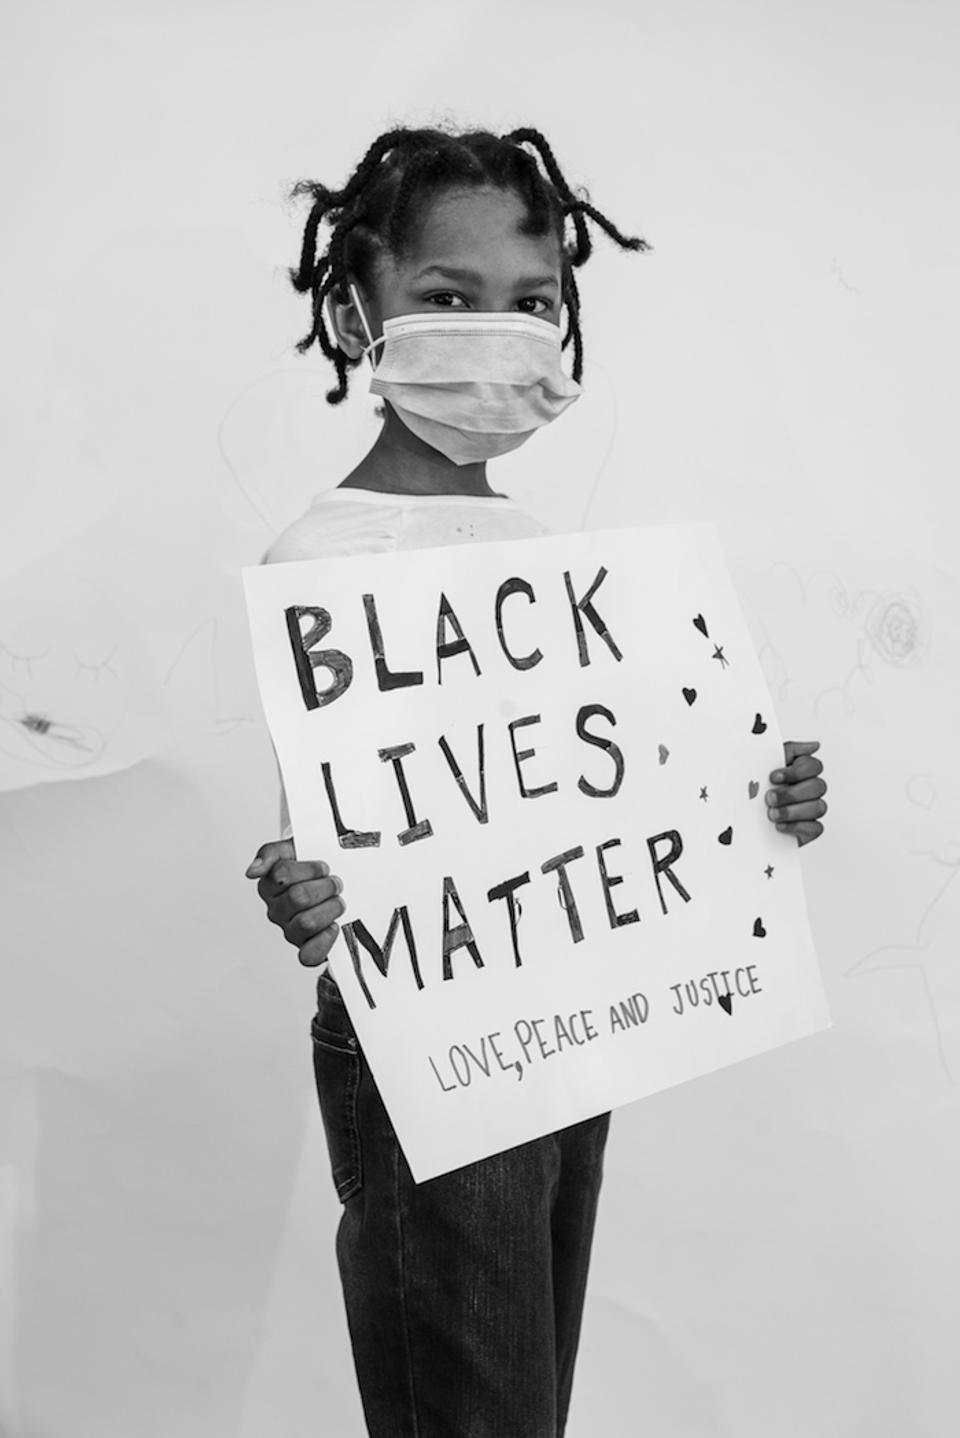 Nayla, 6, at the Stroll for Freedom in Bed-Stuy in Brooklyn, New York in June 2020.